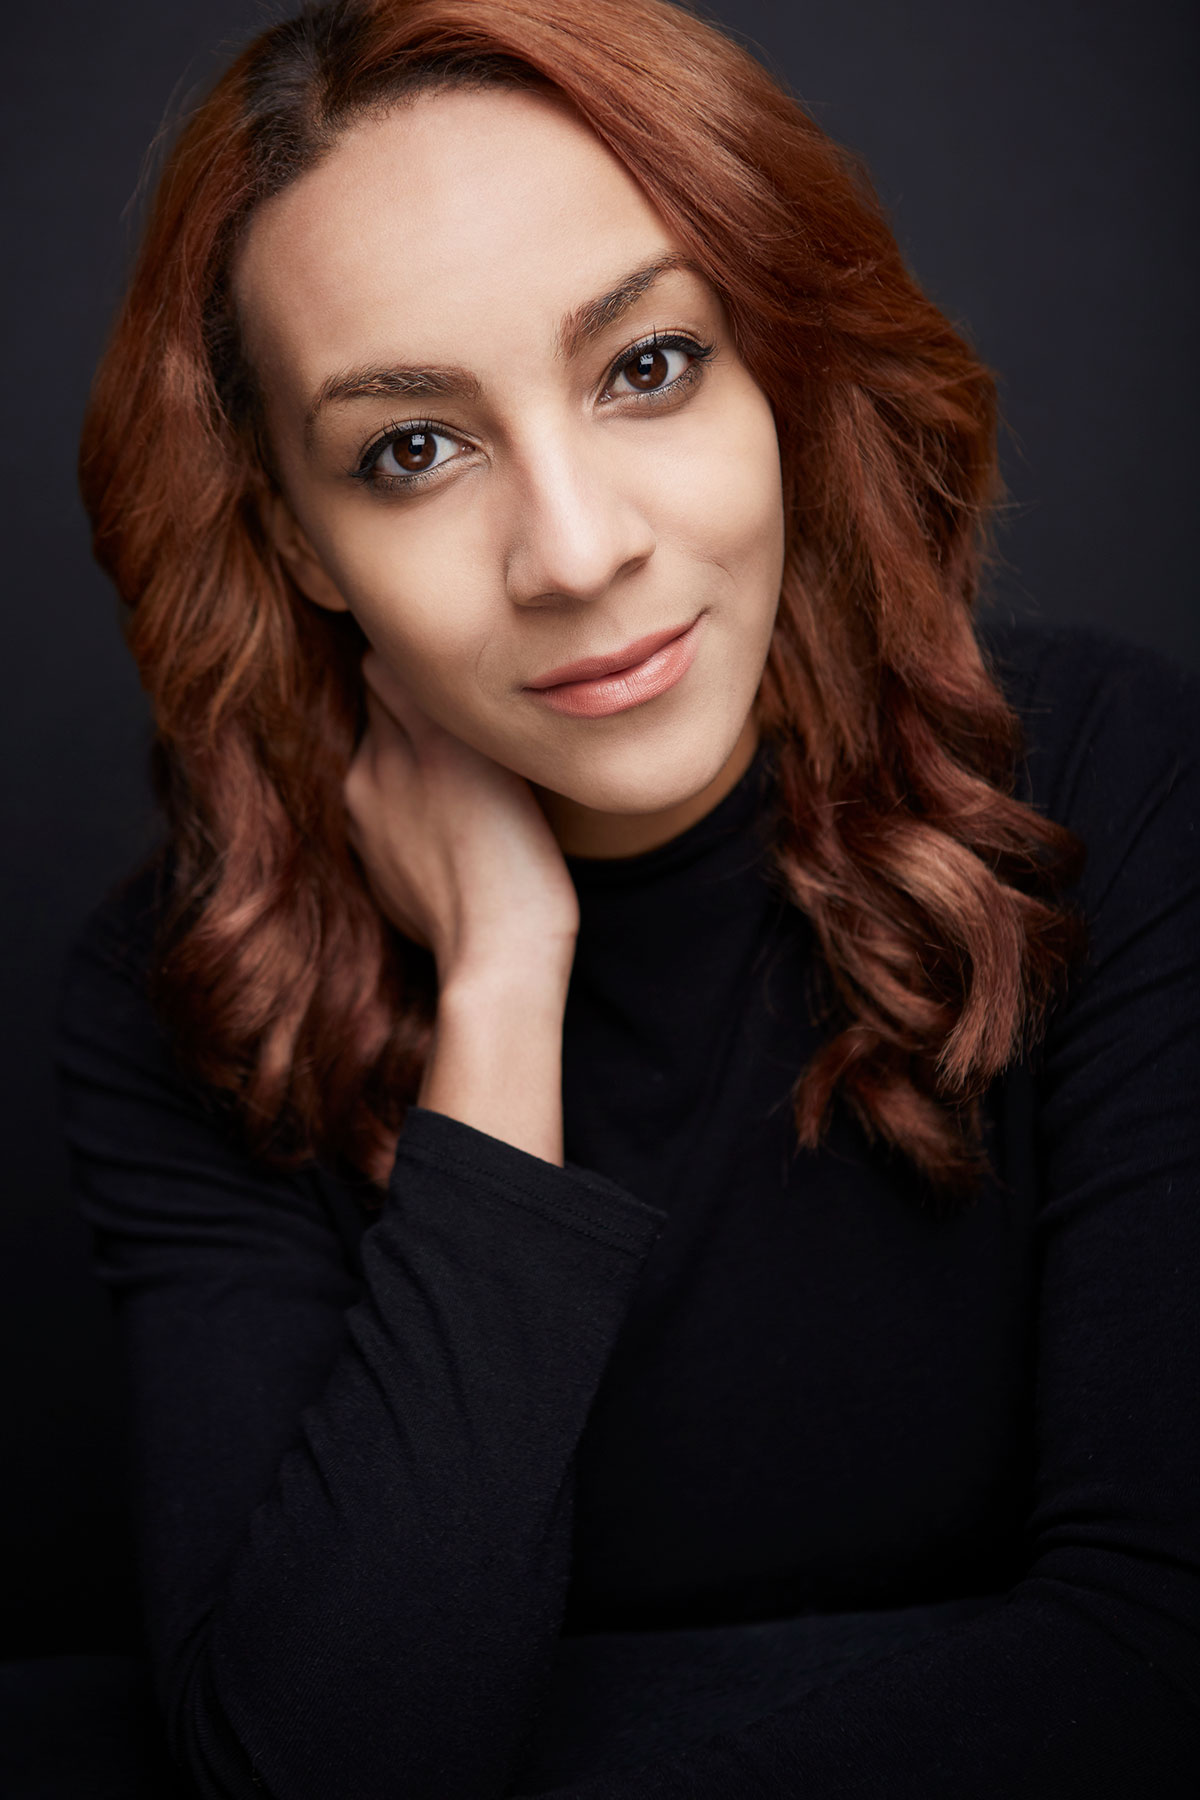 Brianna_Actor_Headshot_Photographer_Chicago_Tiny_Space_Studio_Professional_Head_Shot_Photography_Author_Writor_Actress_Portraits